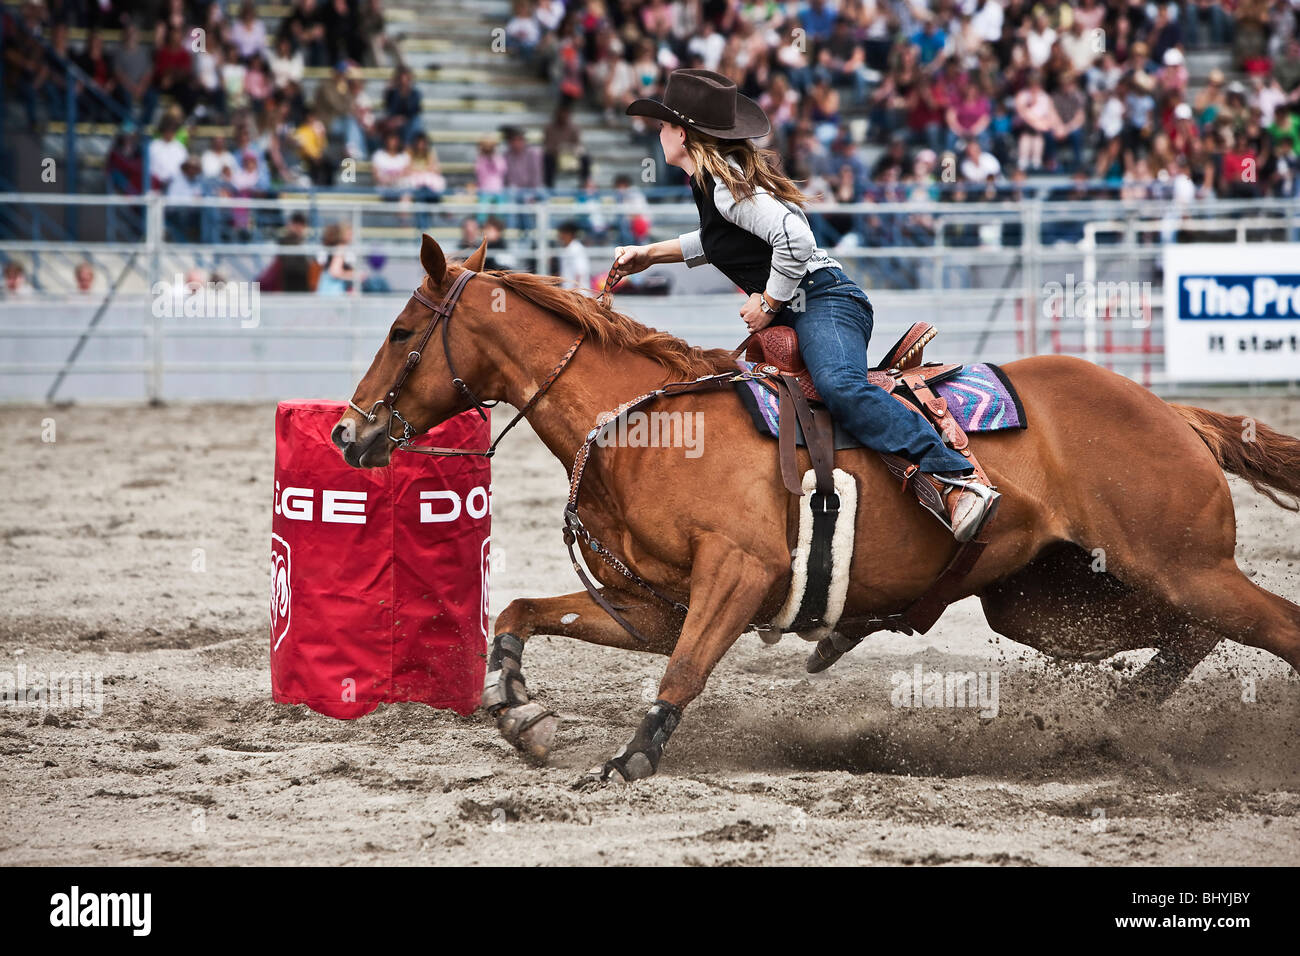 Cowgirl riding a horse during  Rodeo - Stock Image